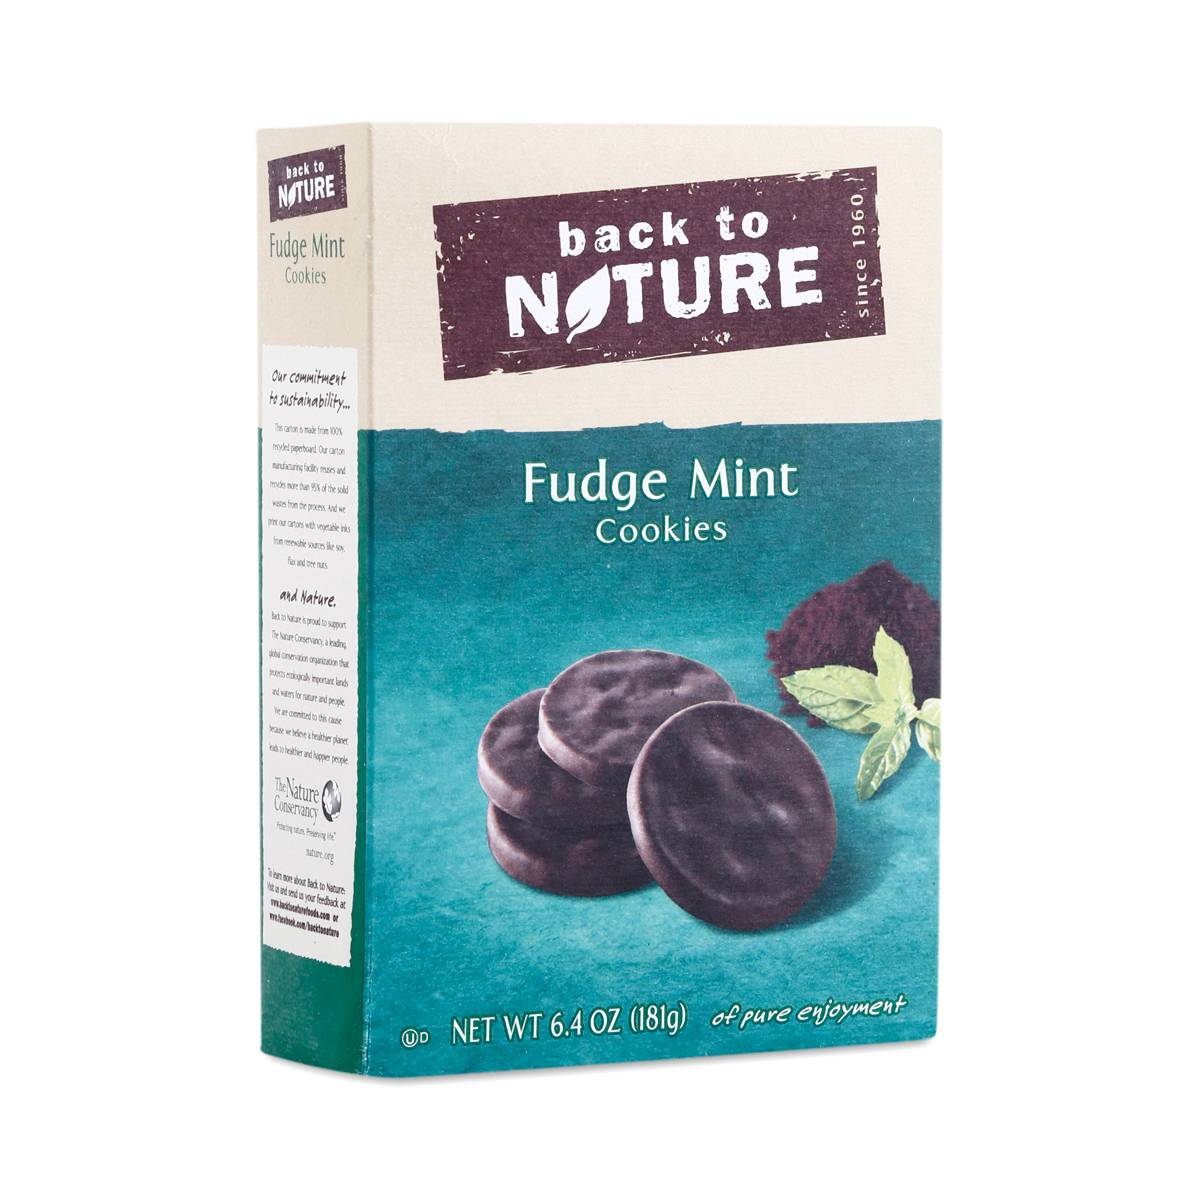 Fudge Mint Cookies By Back To Nature Thrive Market